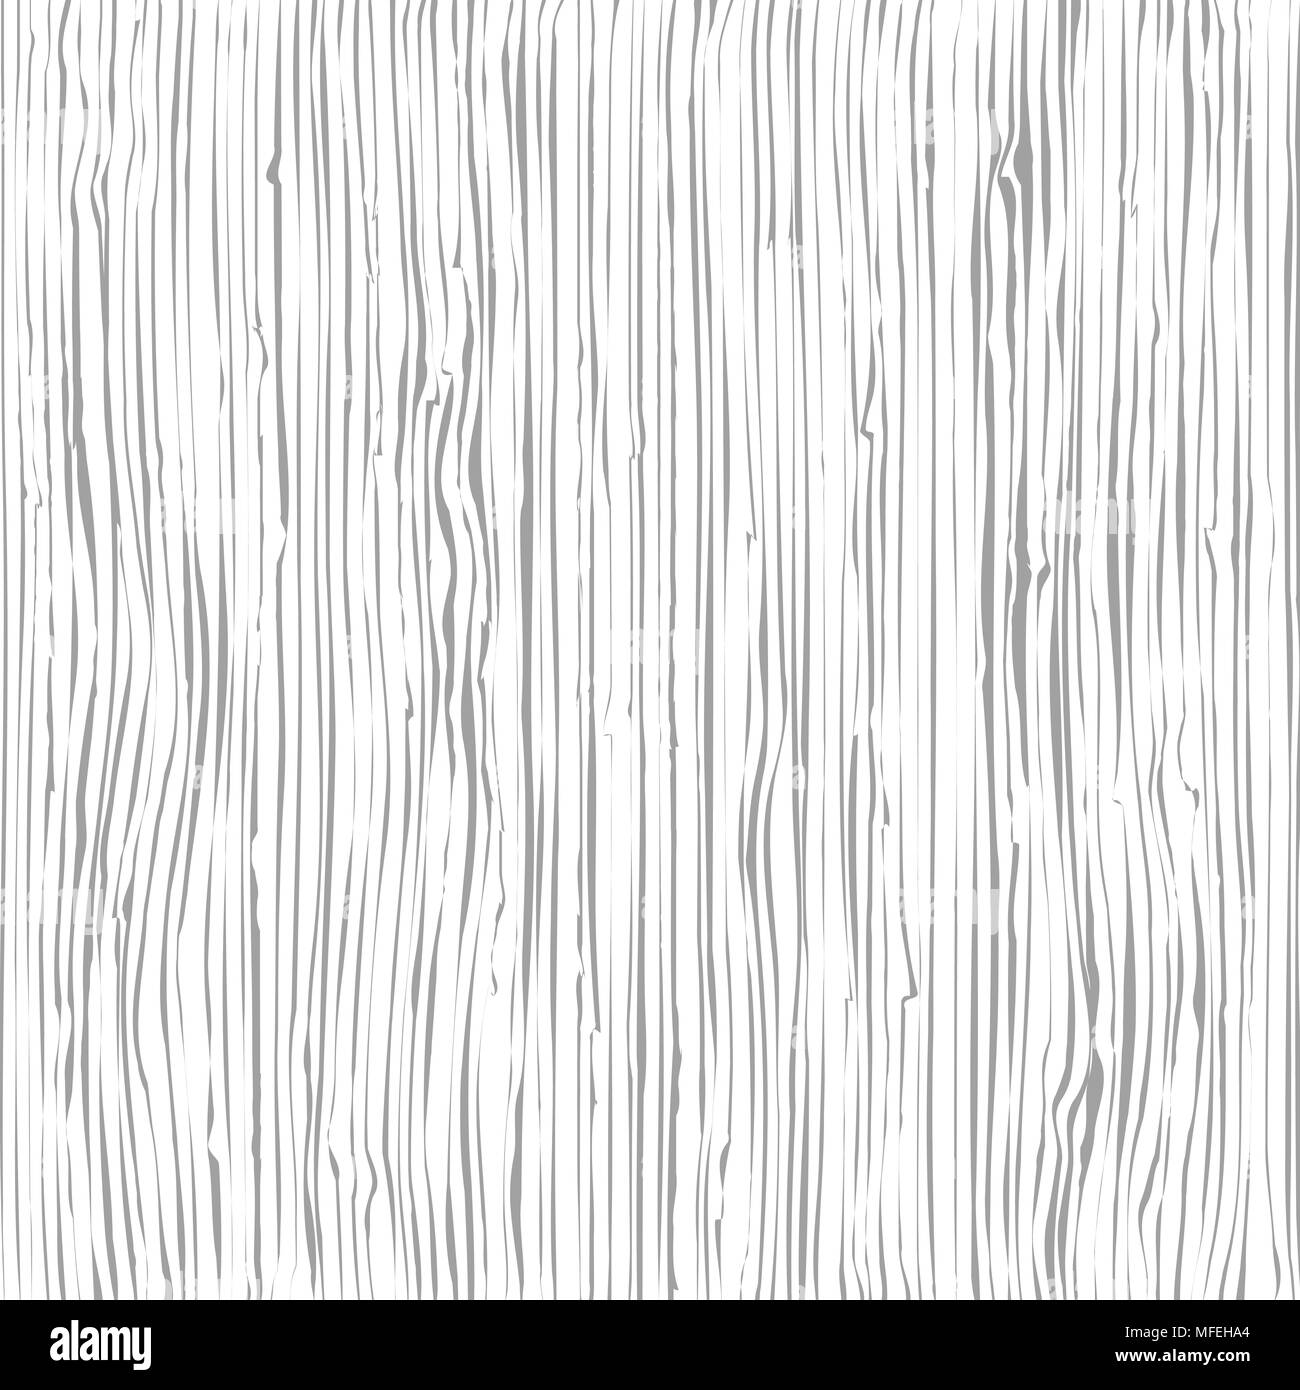 Wood Grain Pattern Wooden Texture Fibers Structure Background